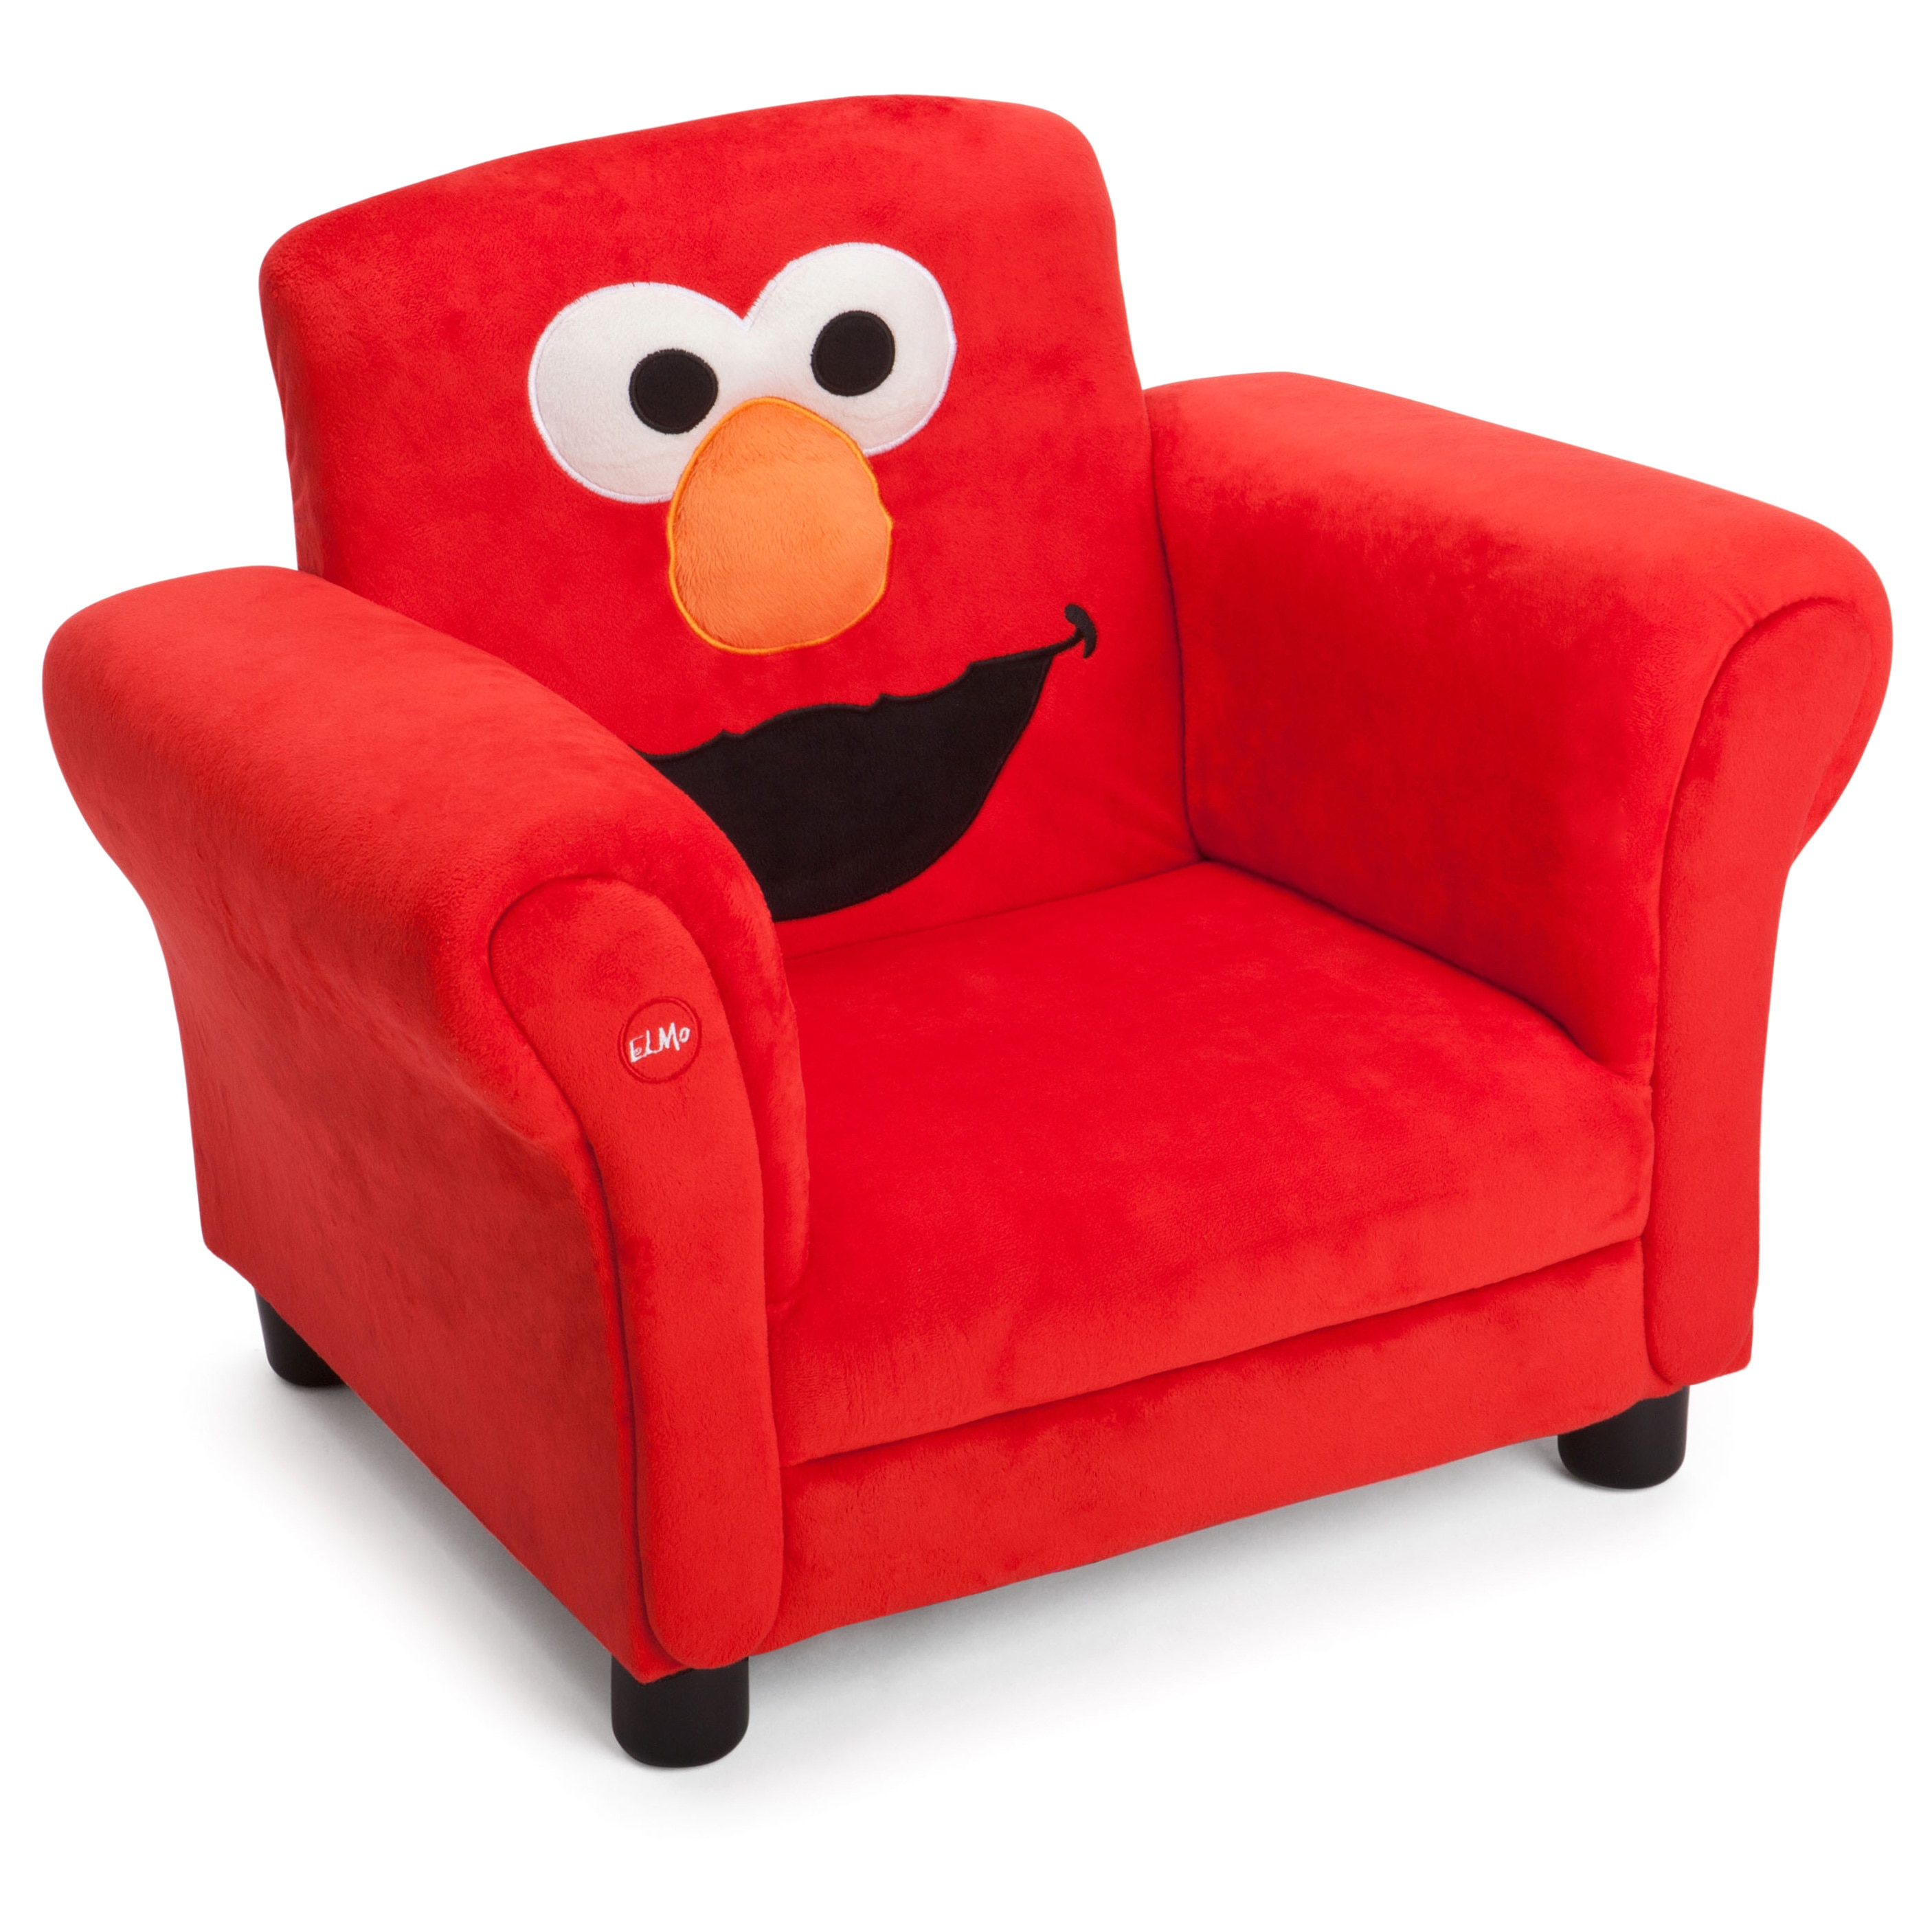 Shop delta children sesame street upholstered chair with sound free shipping today overstock com 10736772